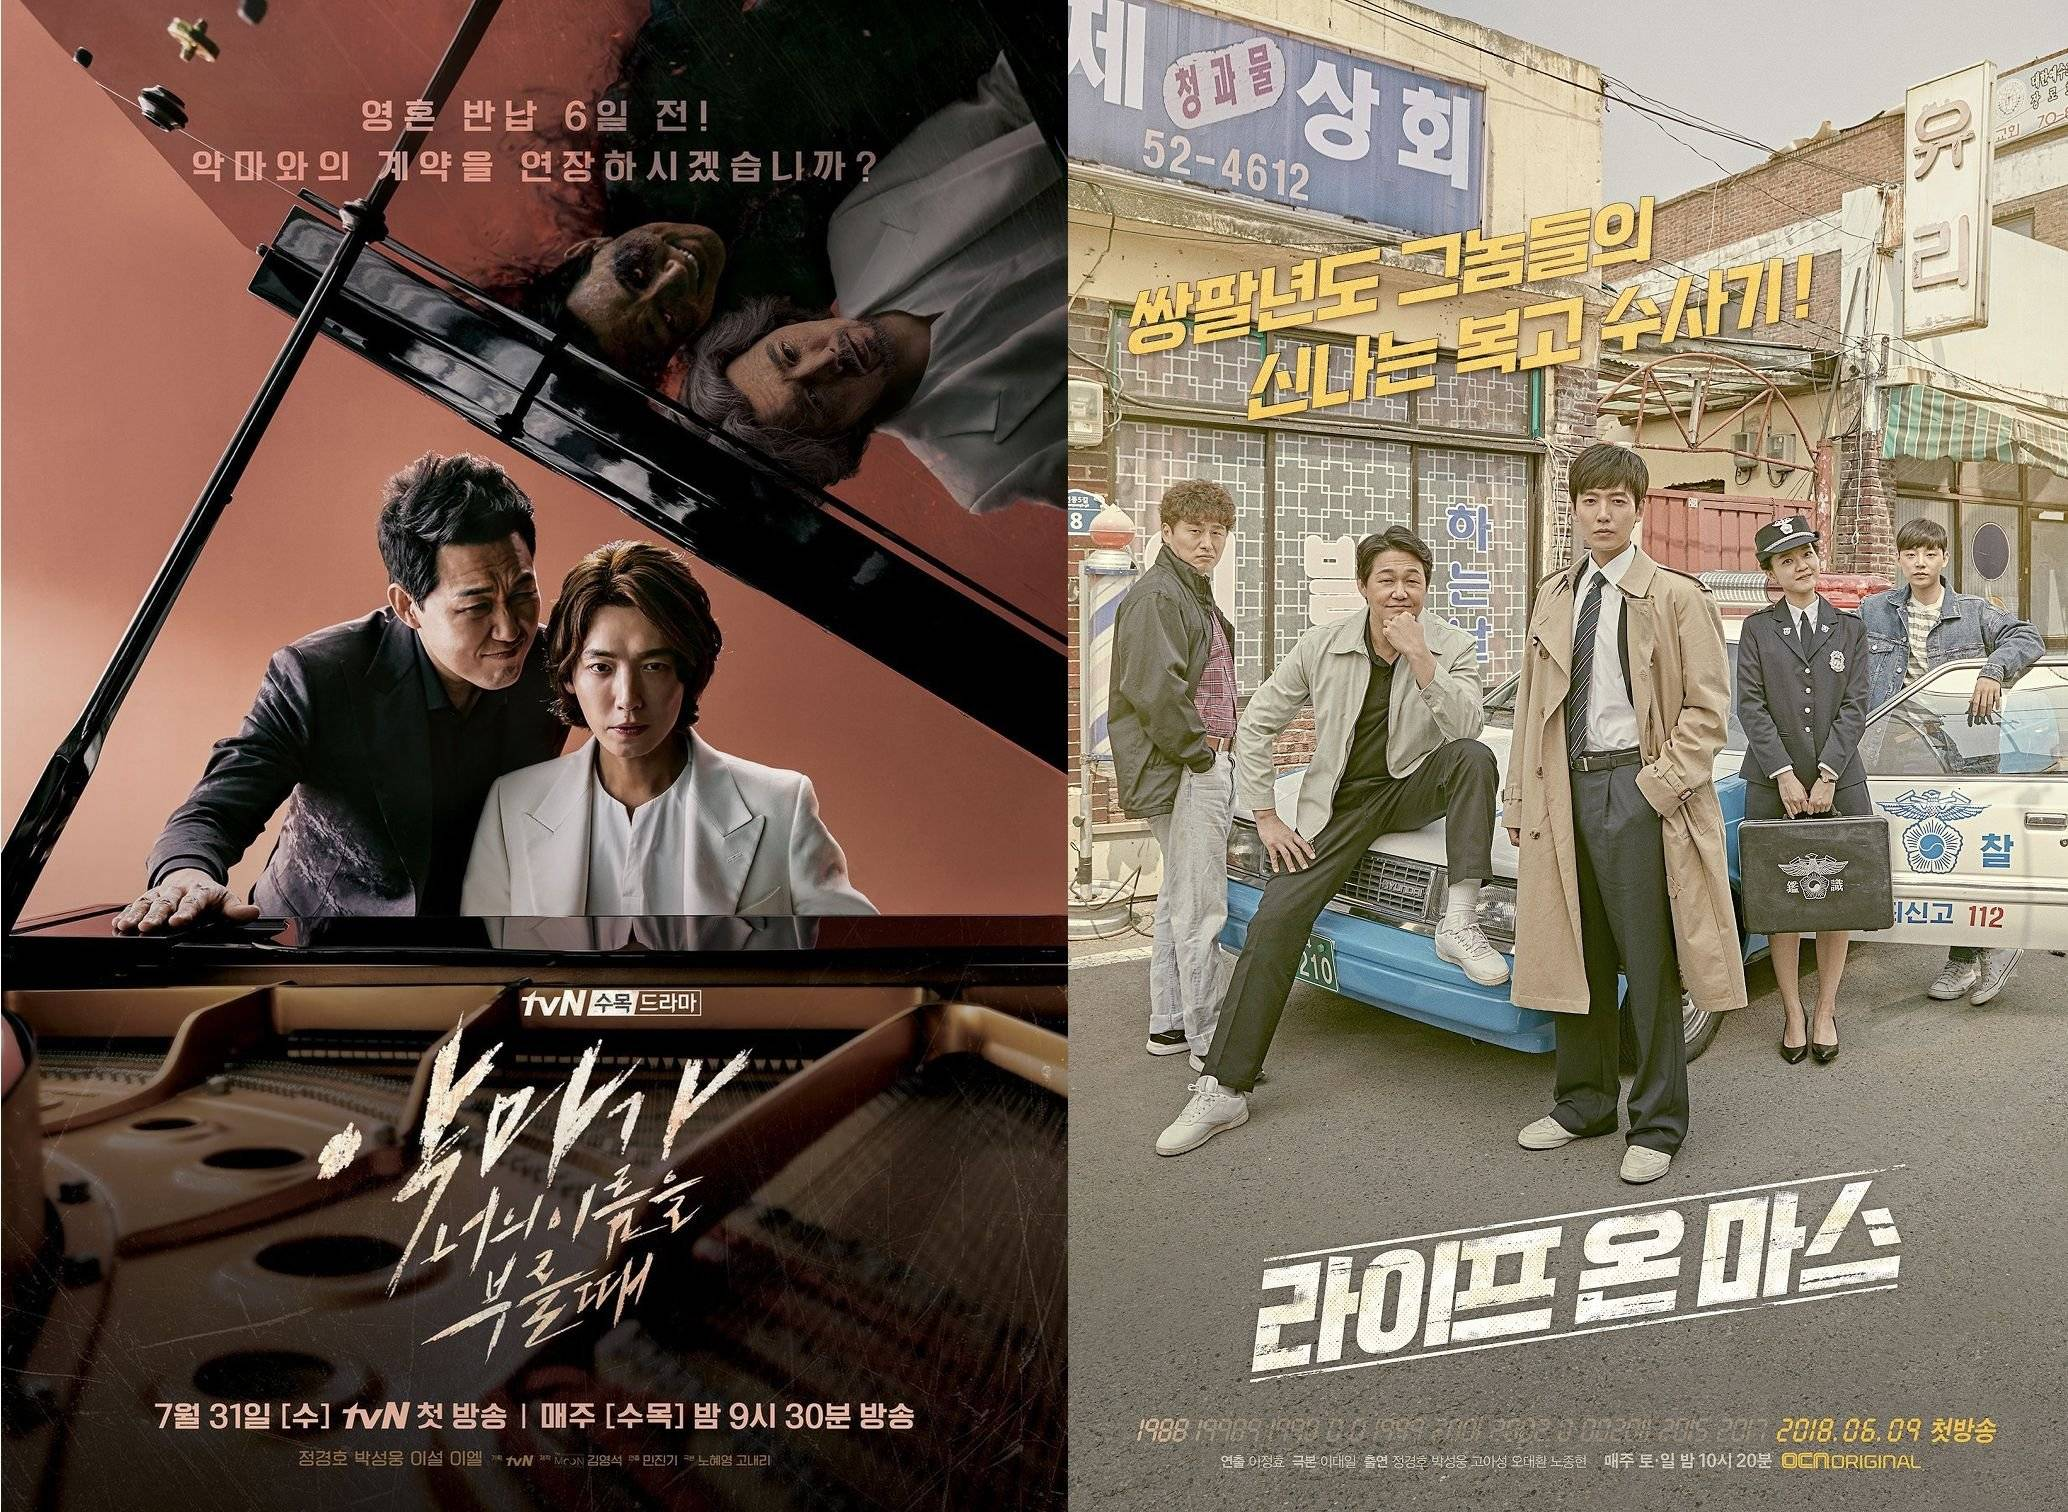 Hancinema S News When The Devil Calls Your Name Reunites Life On Mars Cast Hancinema The Korean Movie And Drama Database